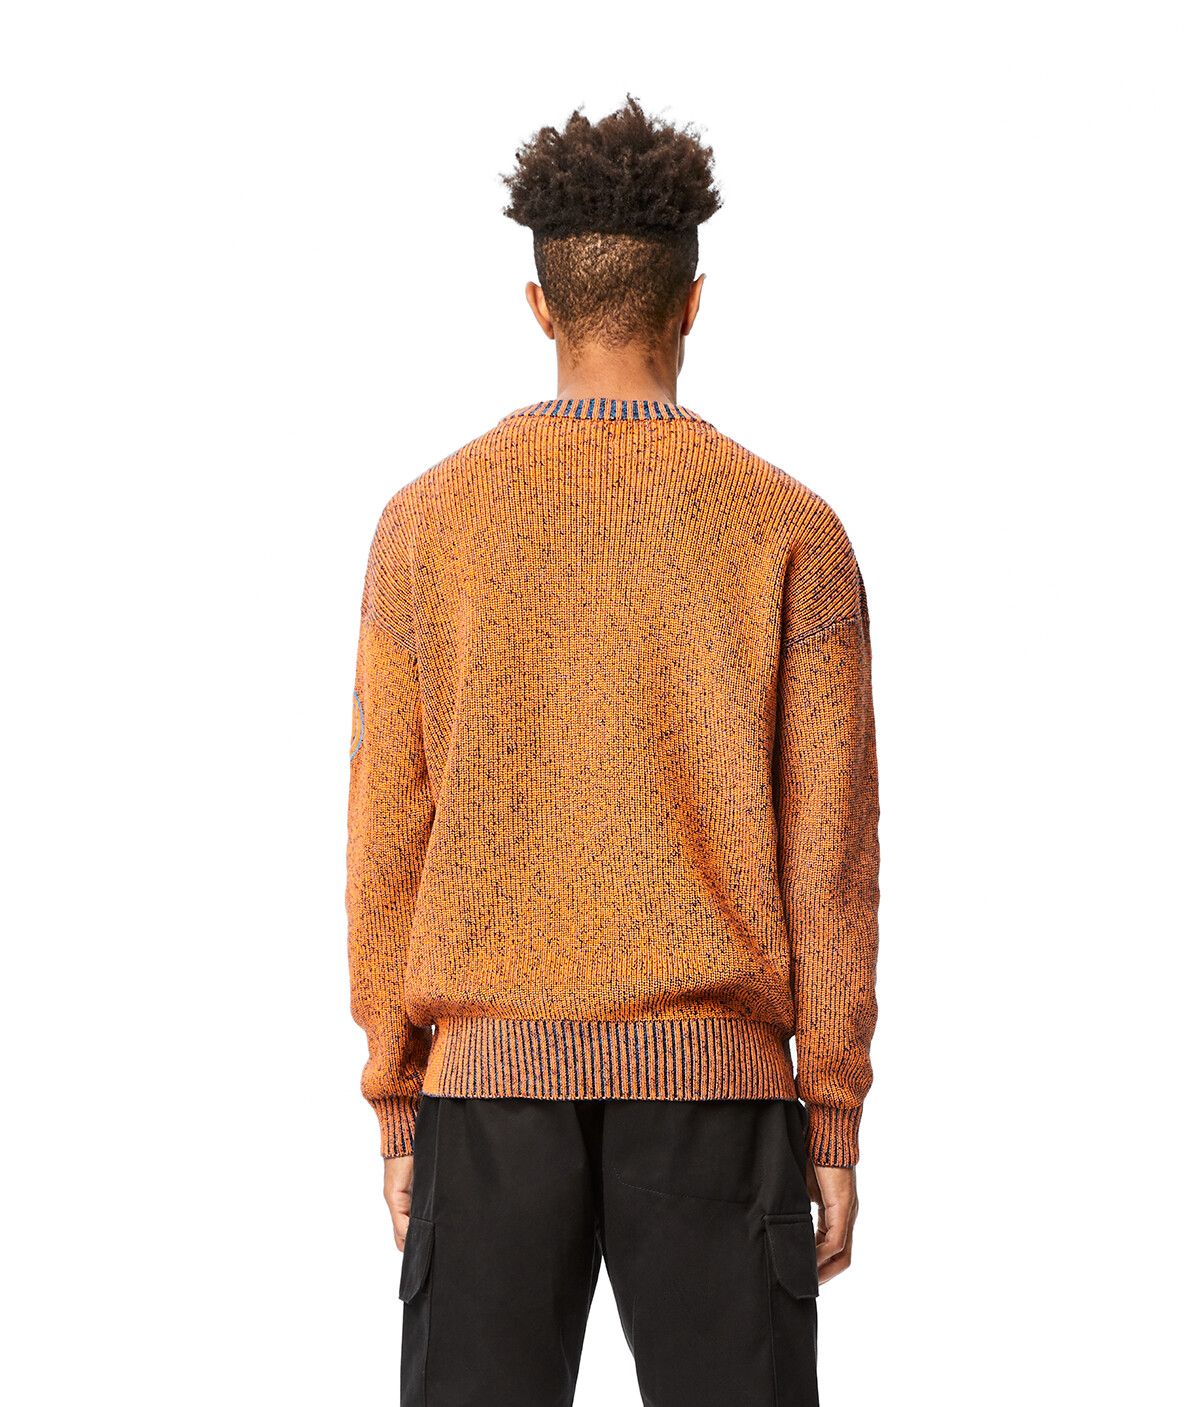 LOEWE Eln Melange Crewneck Sweater Orange/Blue front